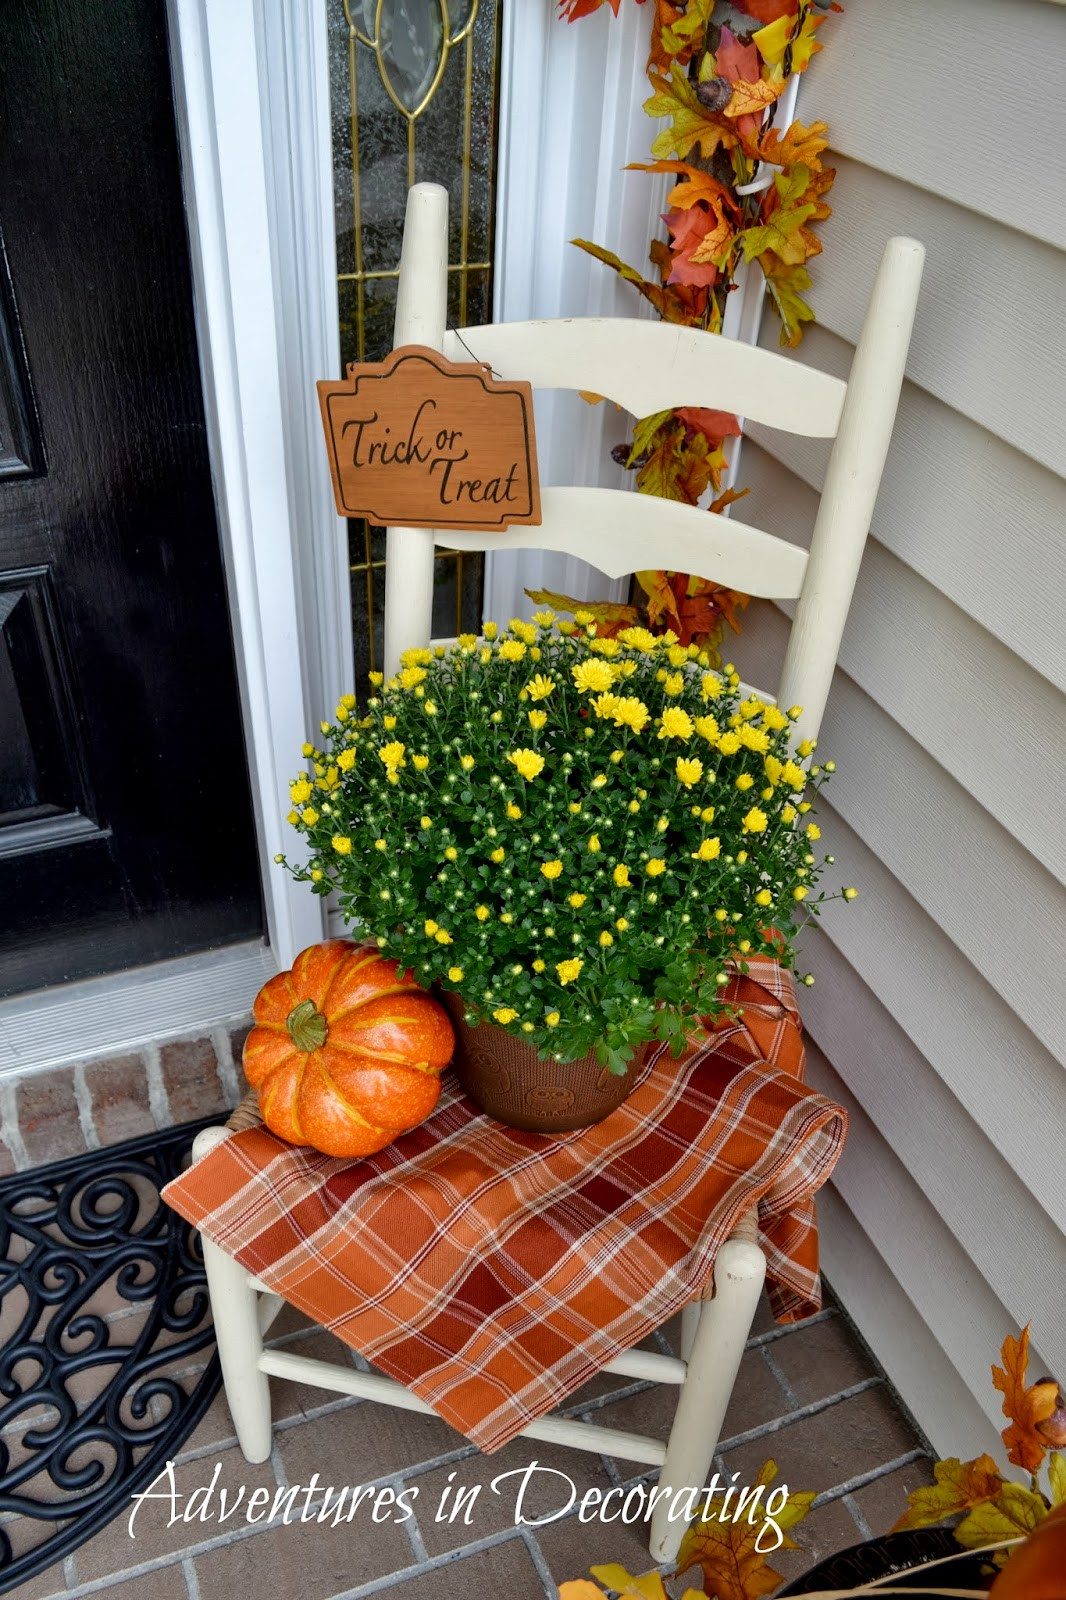 Fall Decorations For Front Porch  Adventures in Decorating Our Fall Front Porch